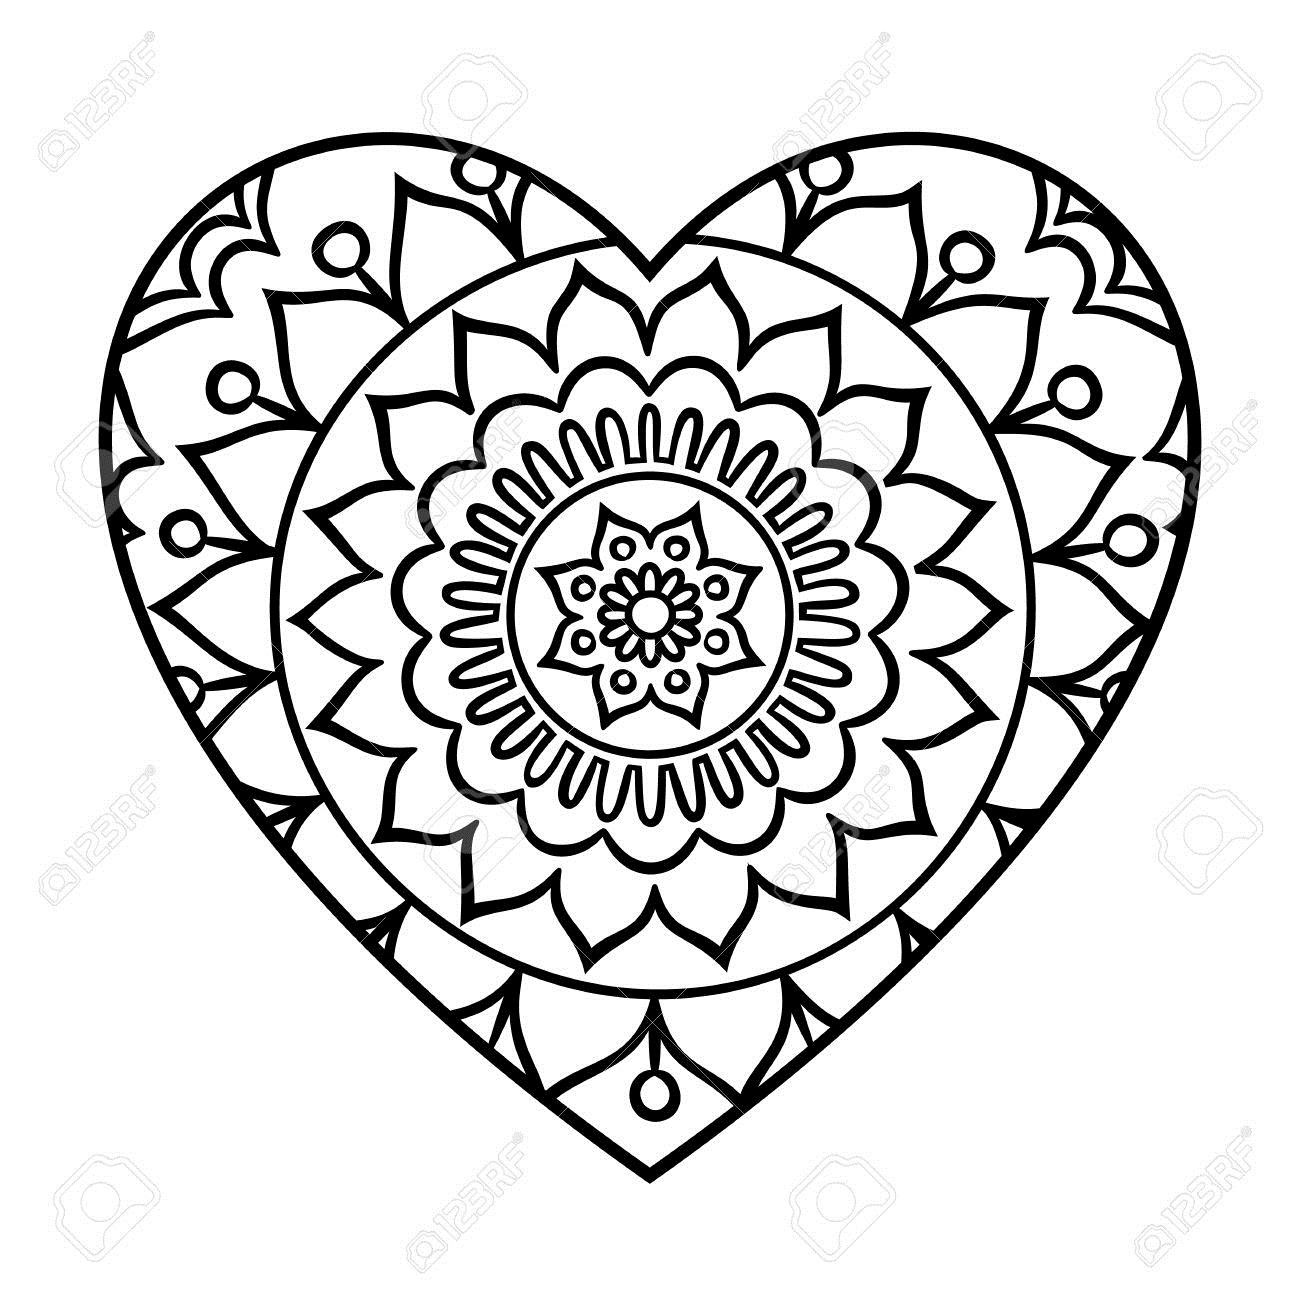 62078224-Doodle-Heart-Mandala-Coloring-Page-Outline-Floral-Design-Element-Stock-Photo